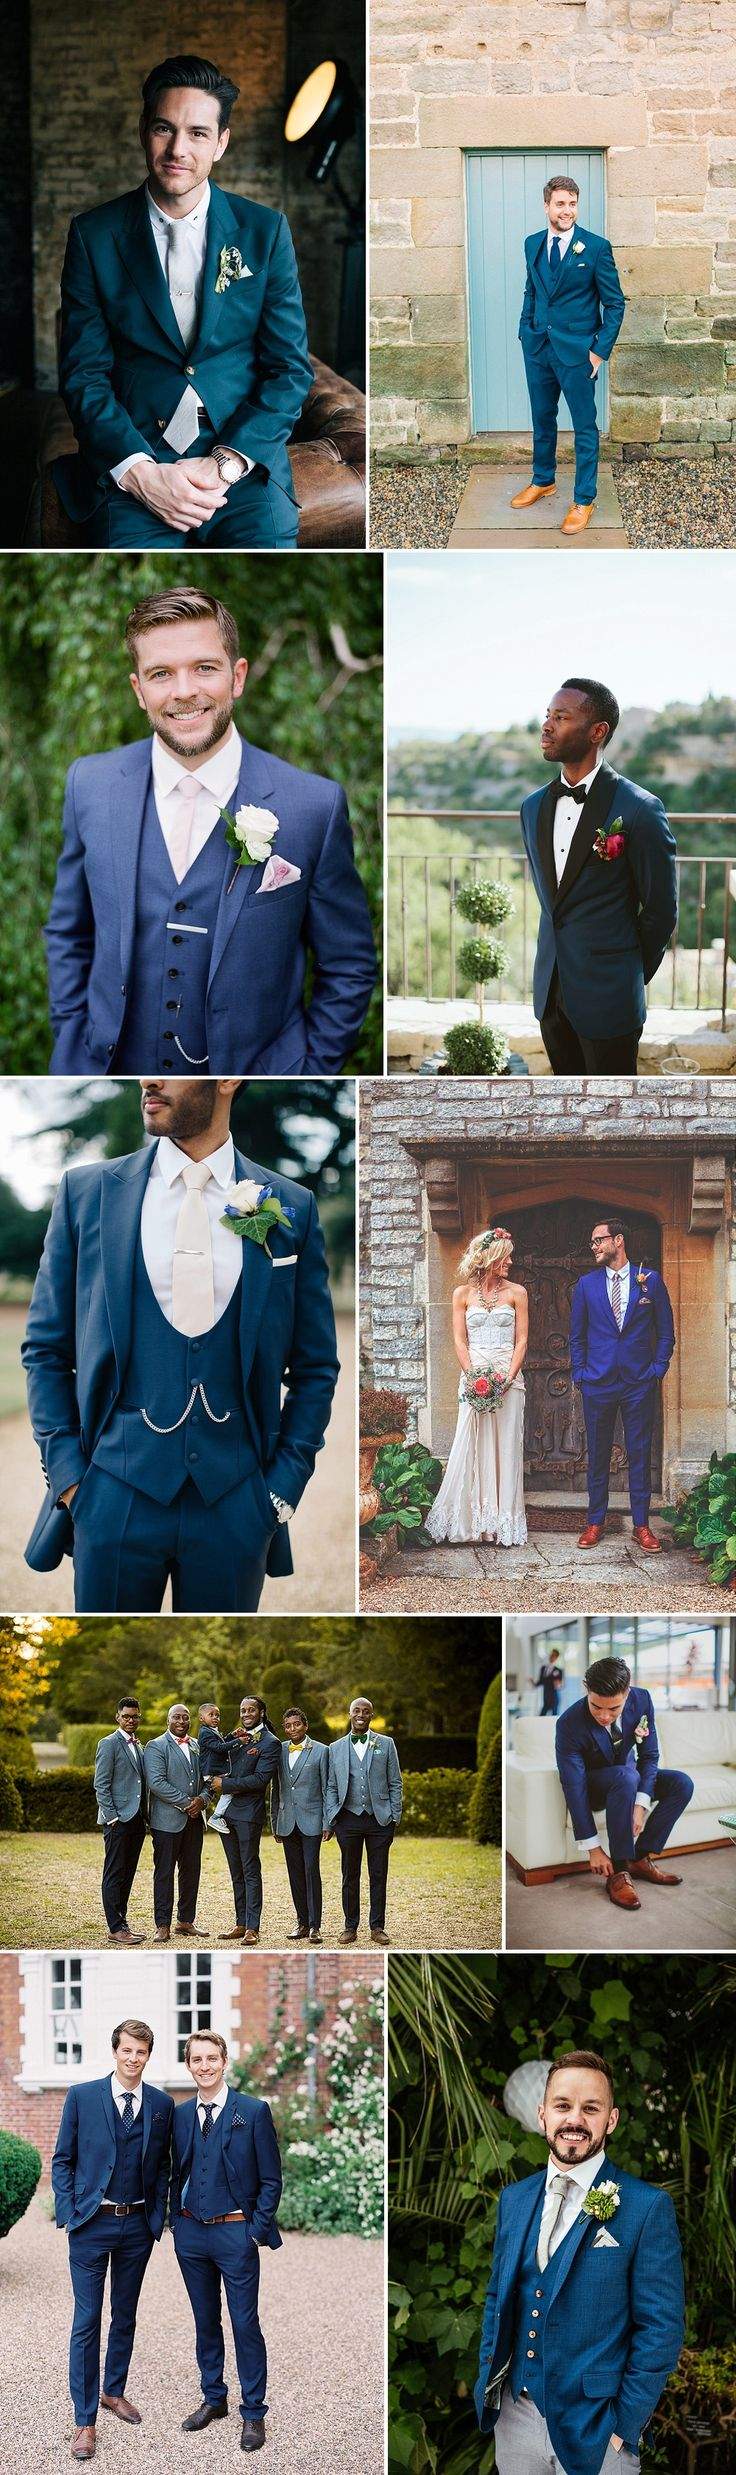 Groom Wearing Navy Blue For Wedding | Groom Fashion Inspiration | Navy Blue Suit